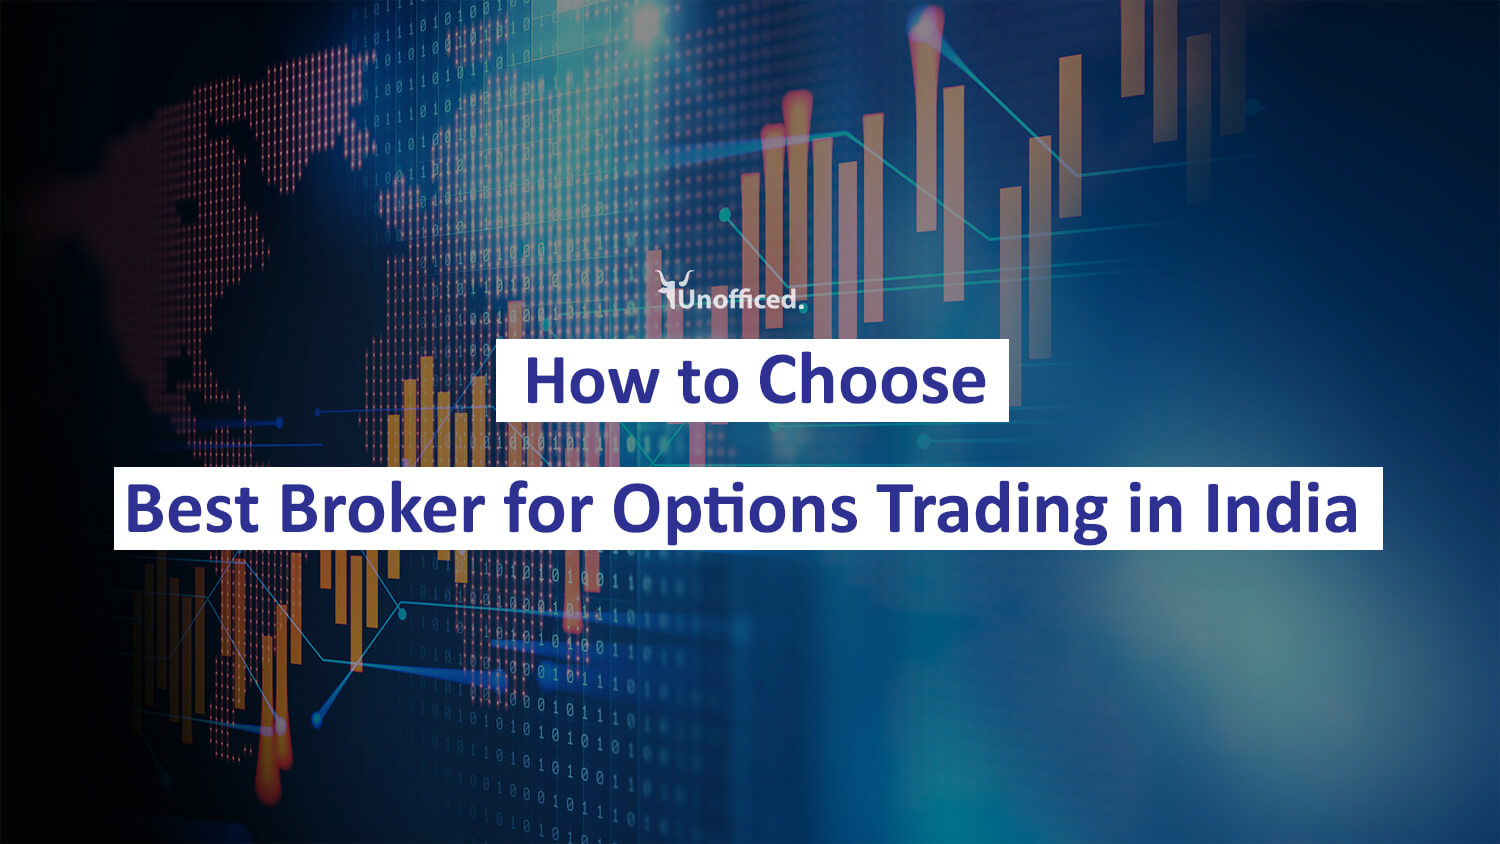 8 Best Brokers for Options Trading in (Reviews) - The Tokenist